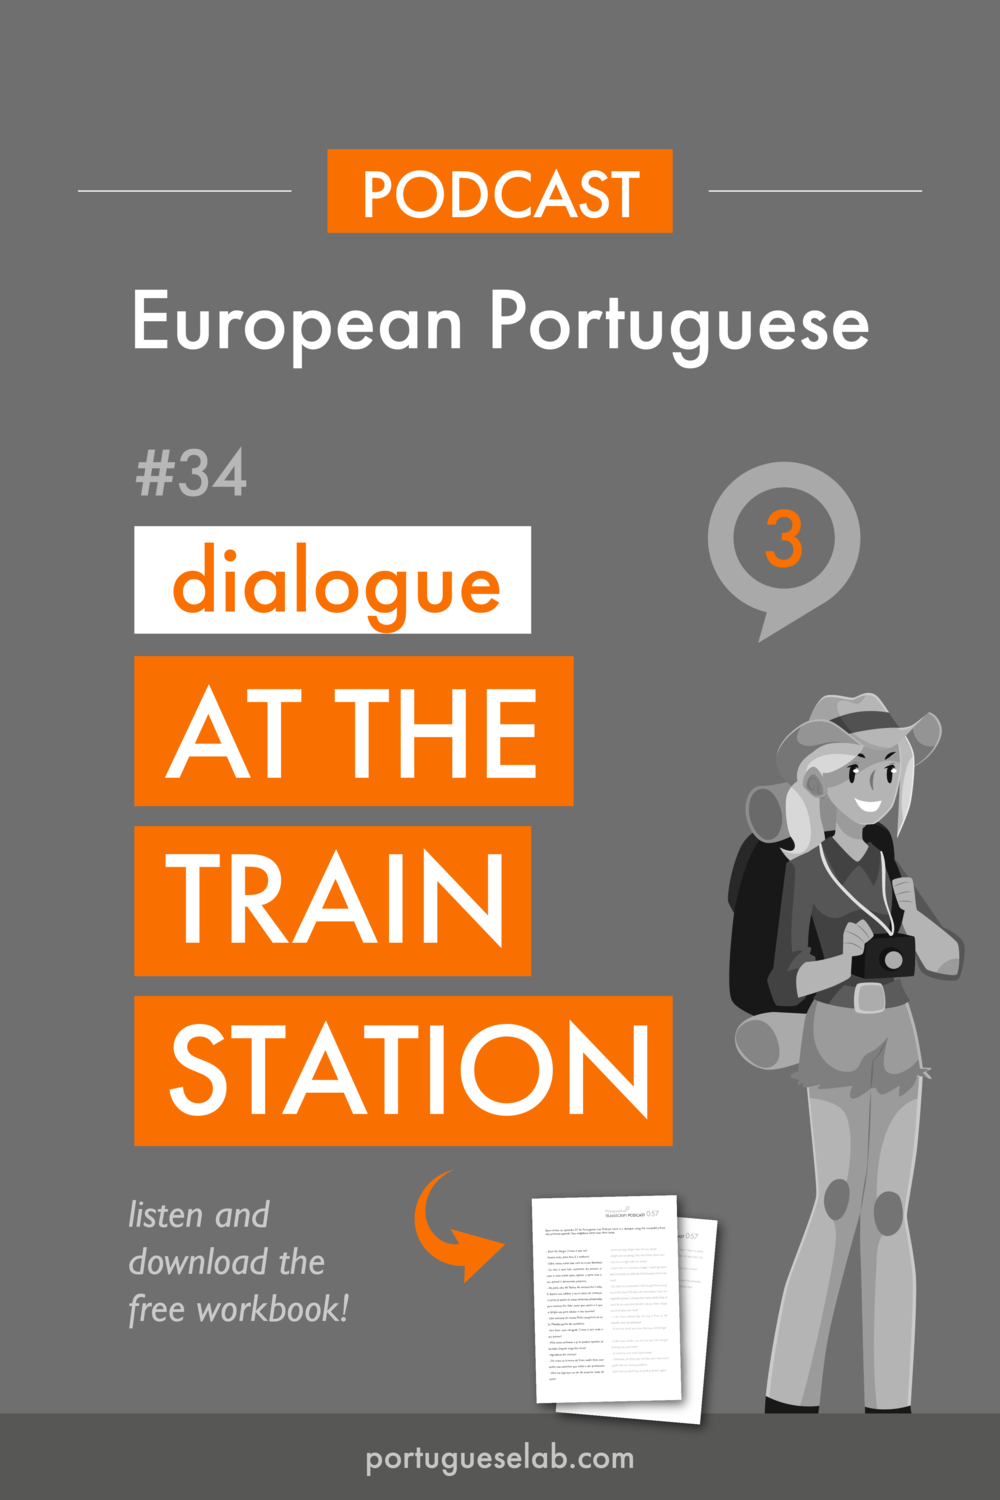 Portuguese Lab Podcast - European Portuguese - 34 - At the train station - dialogue.png